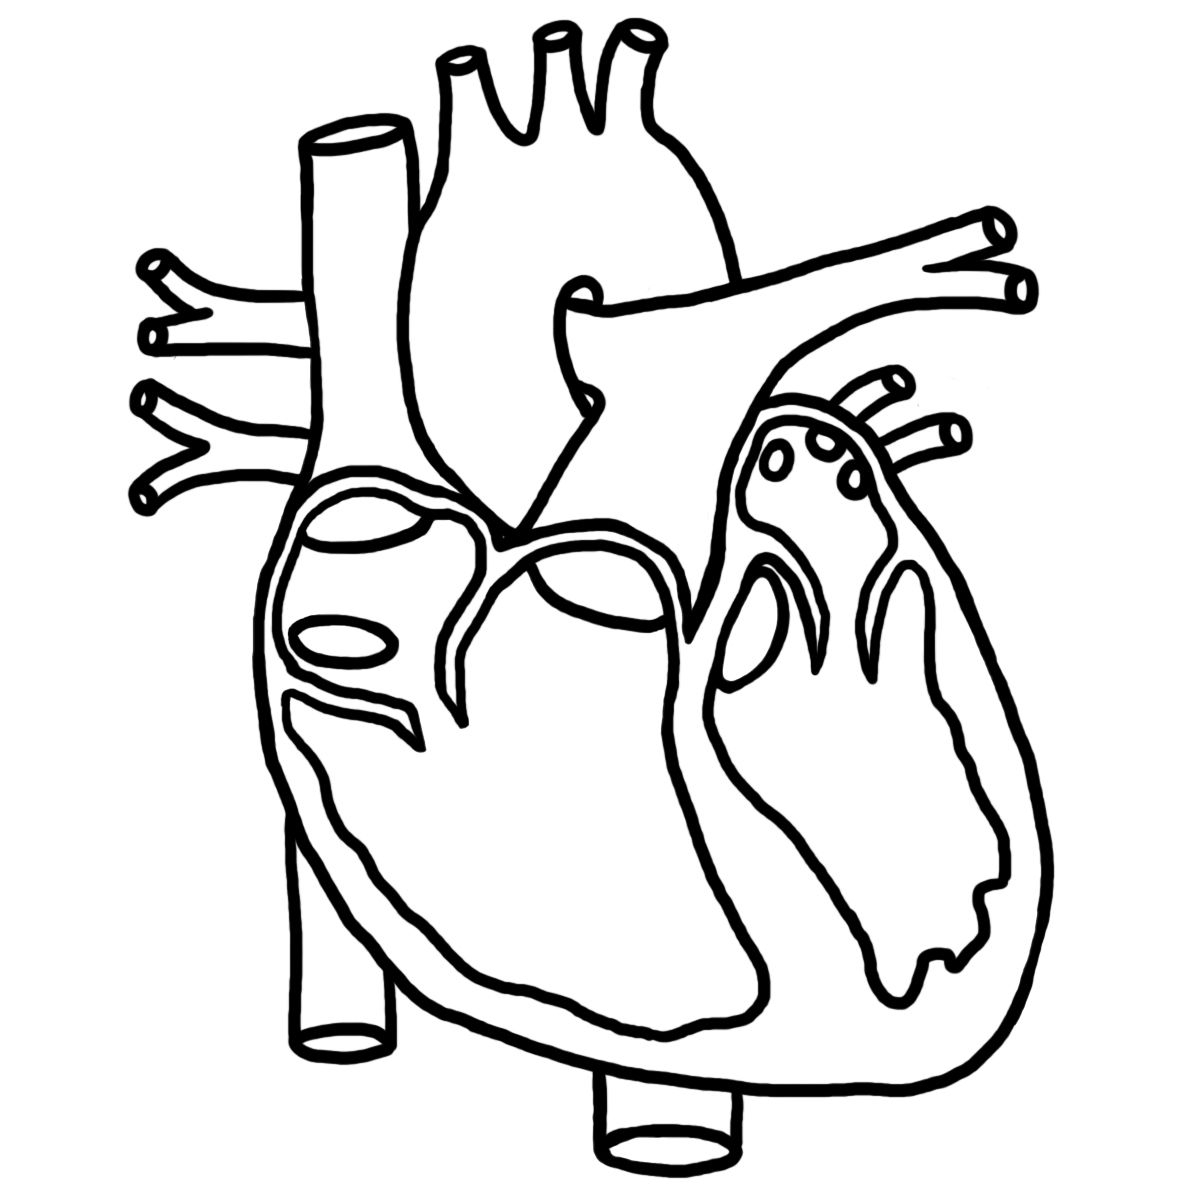 1200x1200 Human Heart Diagram Without Labels Tenderness.co